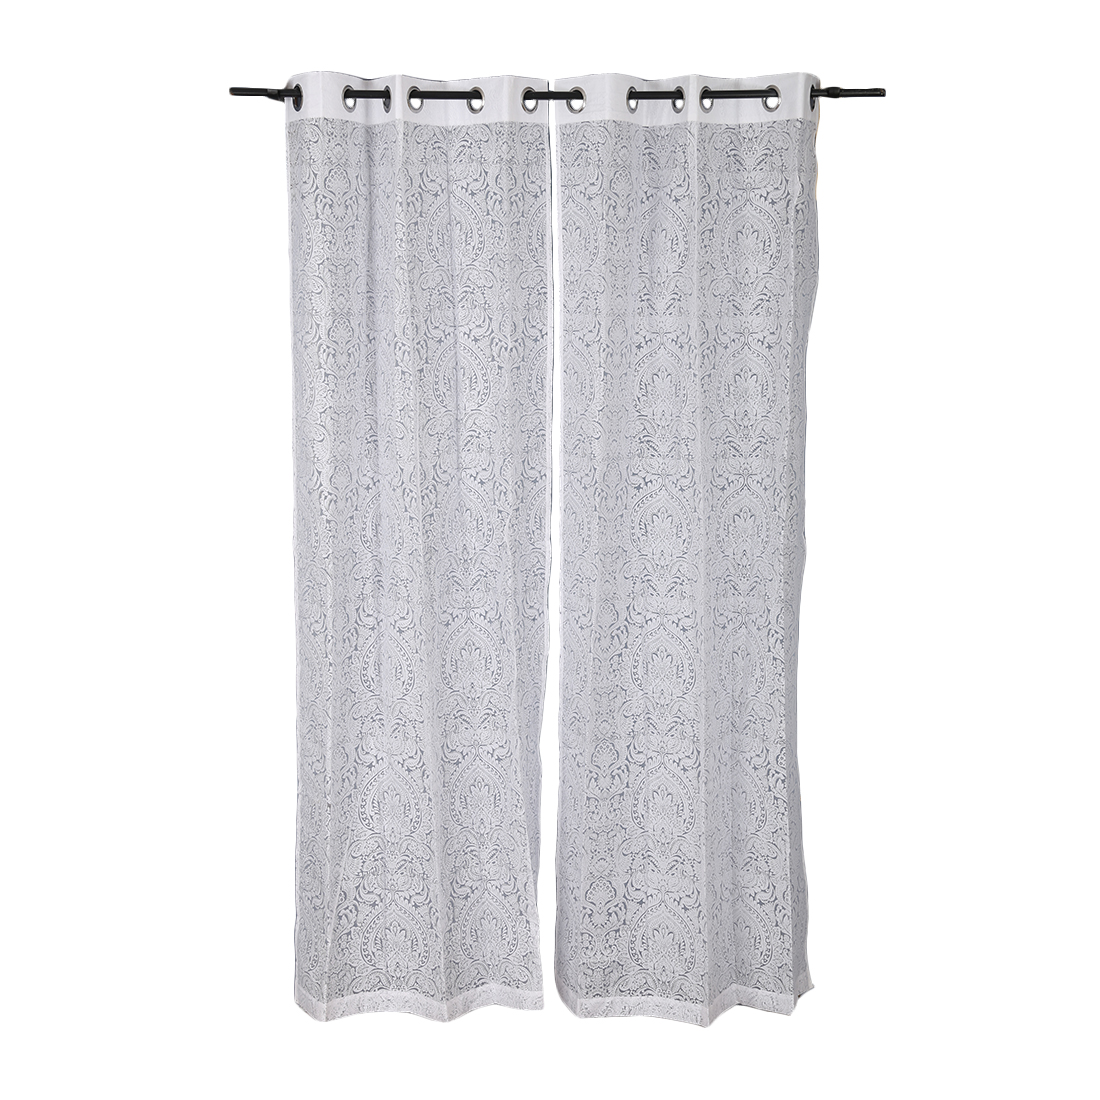 Amour Cotton Polyester Sheer Curtains in White Colour by Living Essence